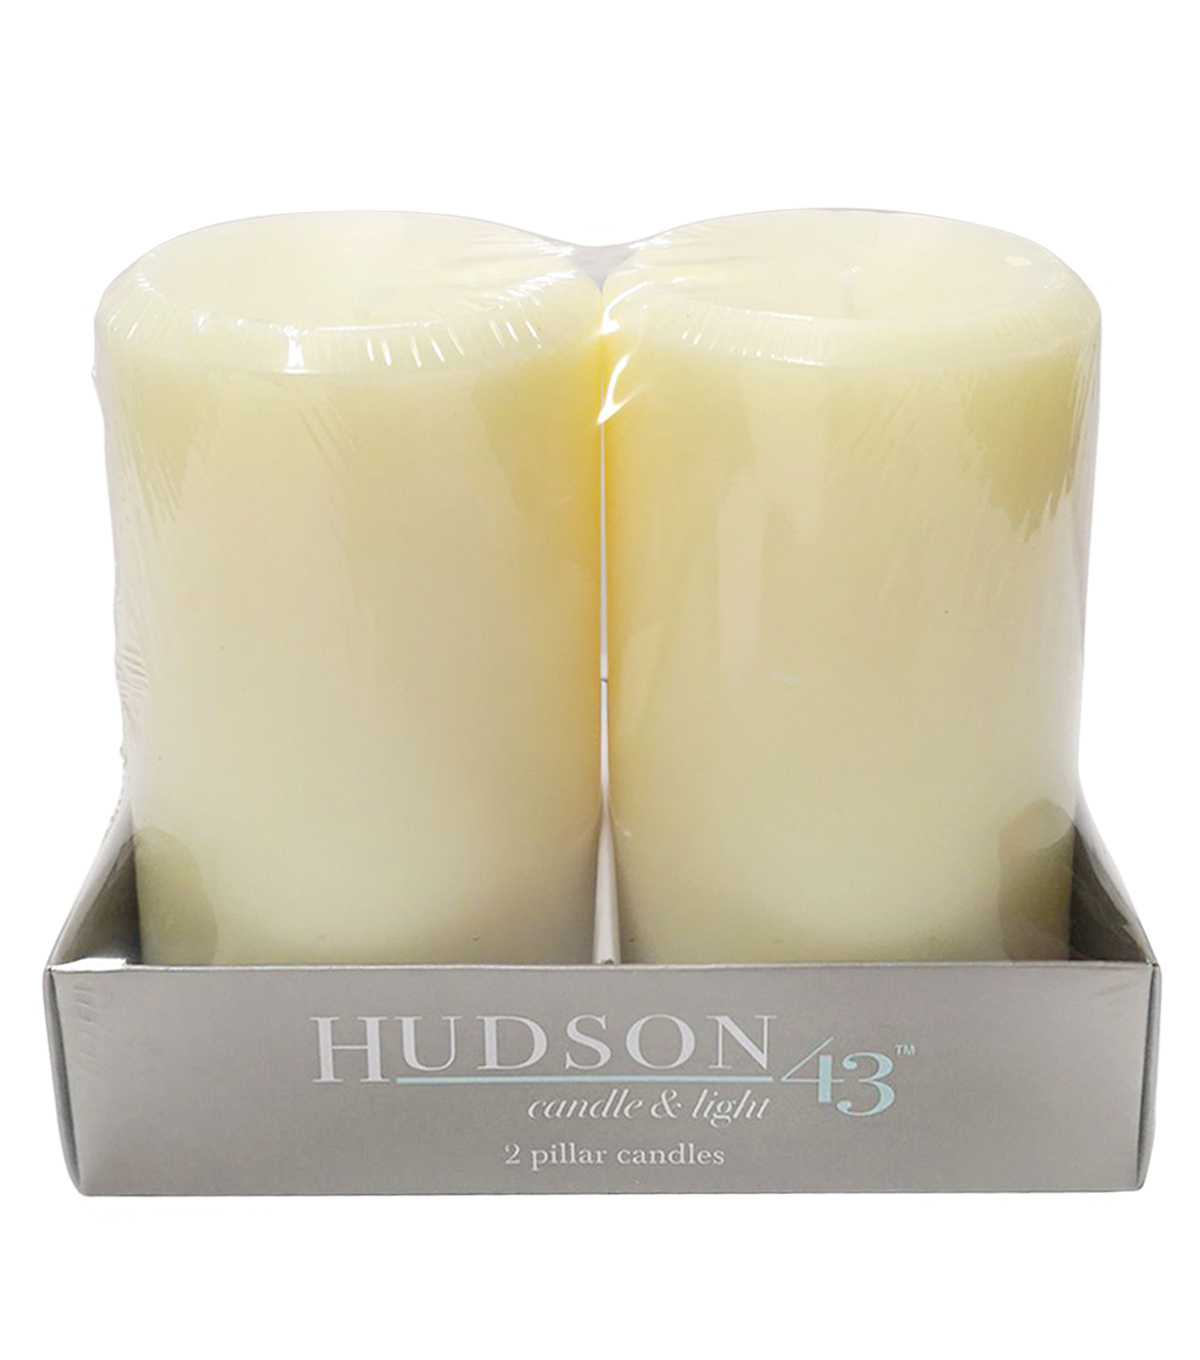 Hudson 43™ Candle&Light Collection 2 Pack 3X5 Smooth Pillar Cream